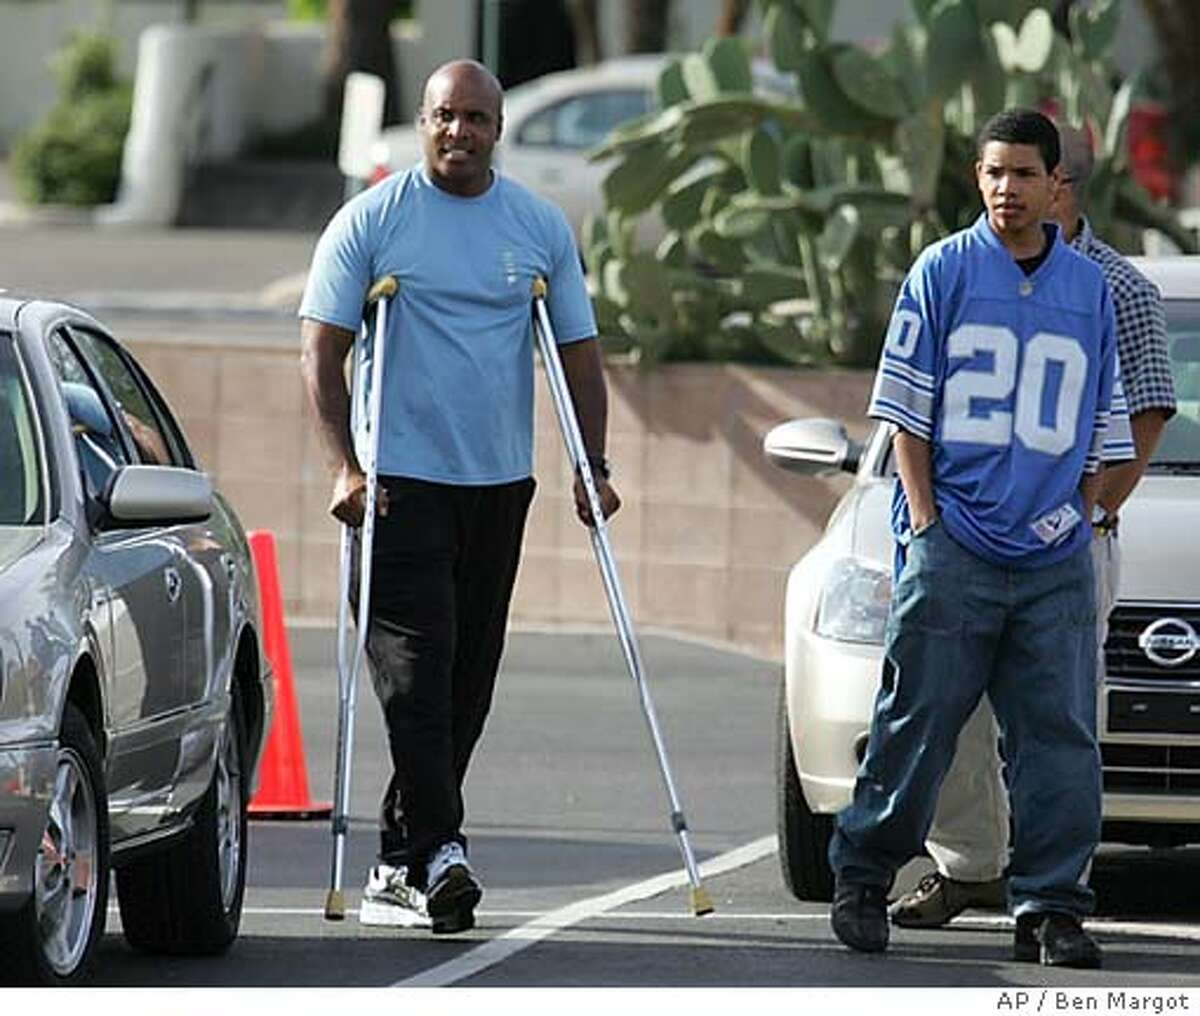 San Francisco Giants' Barry Bonds returns to spring training camp Tuesday, March 22, 2005, in Scottsdale, Ariz. Bonds has returned to Giants camp for rehabilitation since a second arthroscopic surgery on his right knee last week. At right is his son, Nikolai Bonds. (AP Photo/Ben Margot)